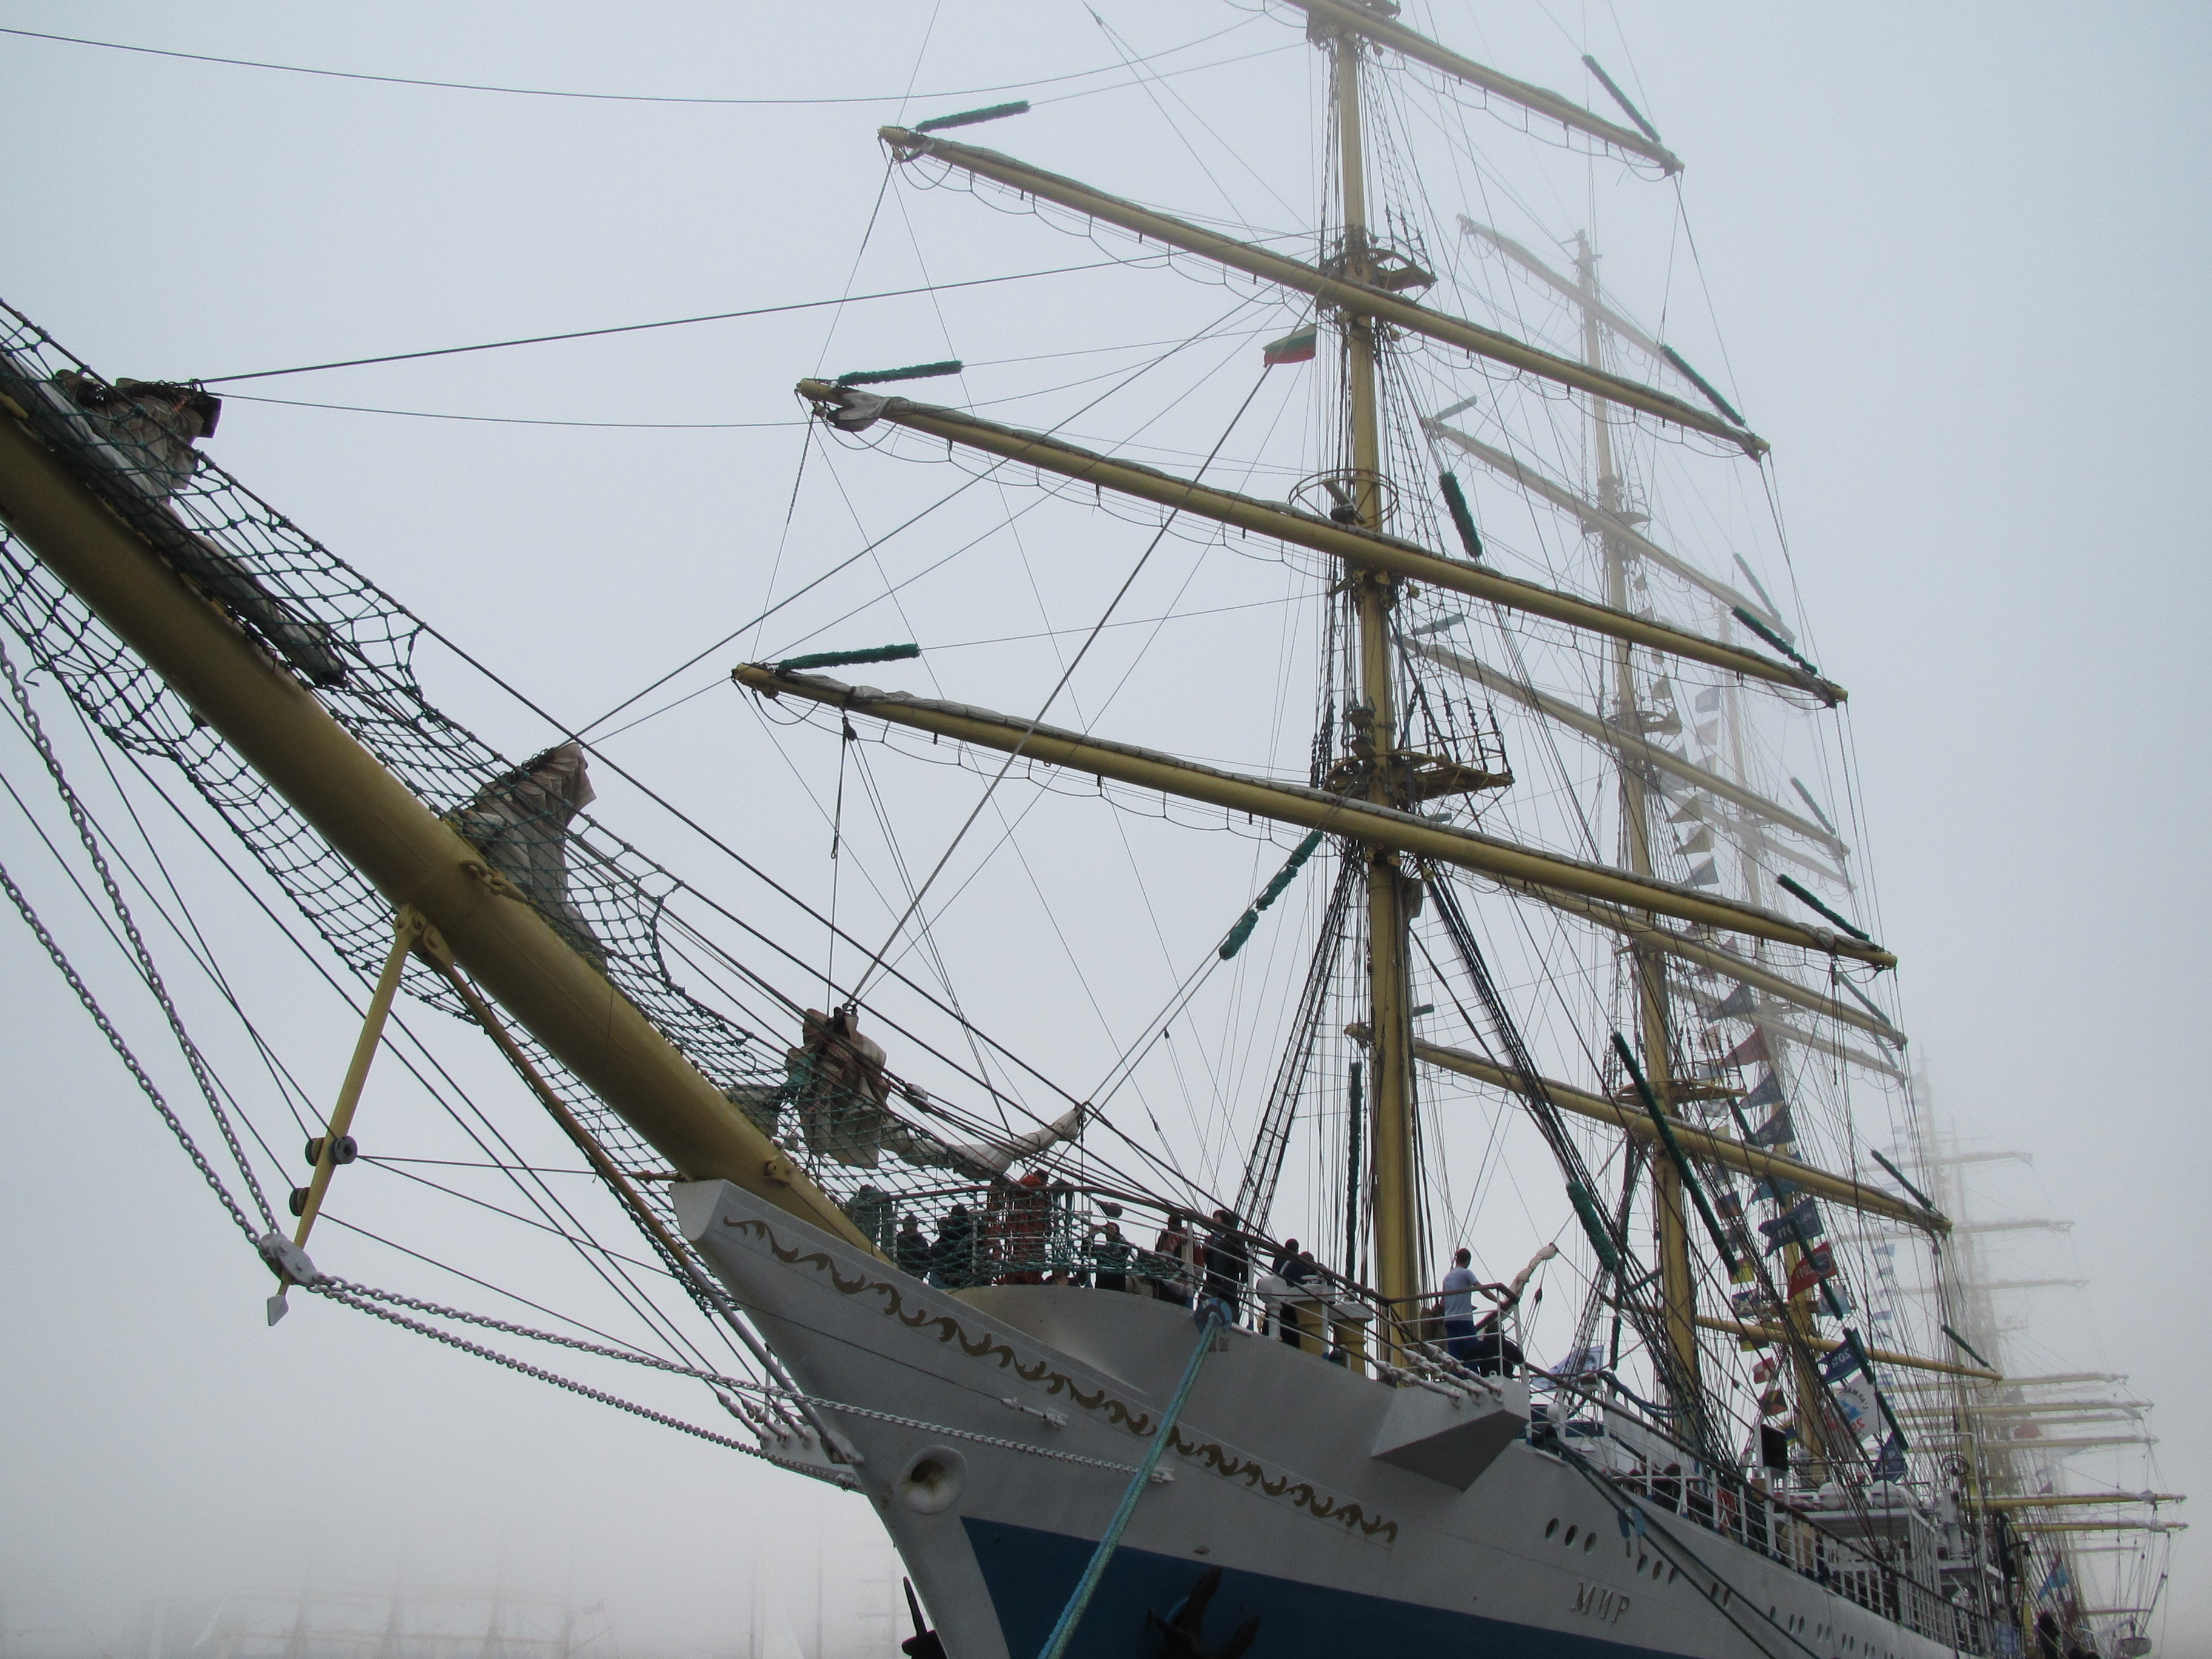 Sailing ship, Transport, Vessel, Wind, Tall, HQ Photo